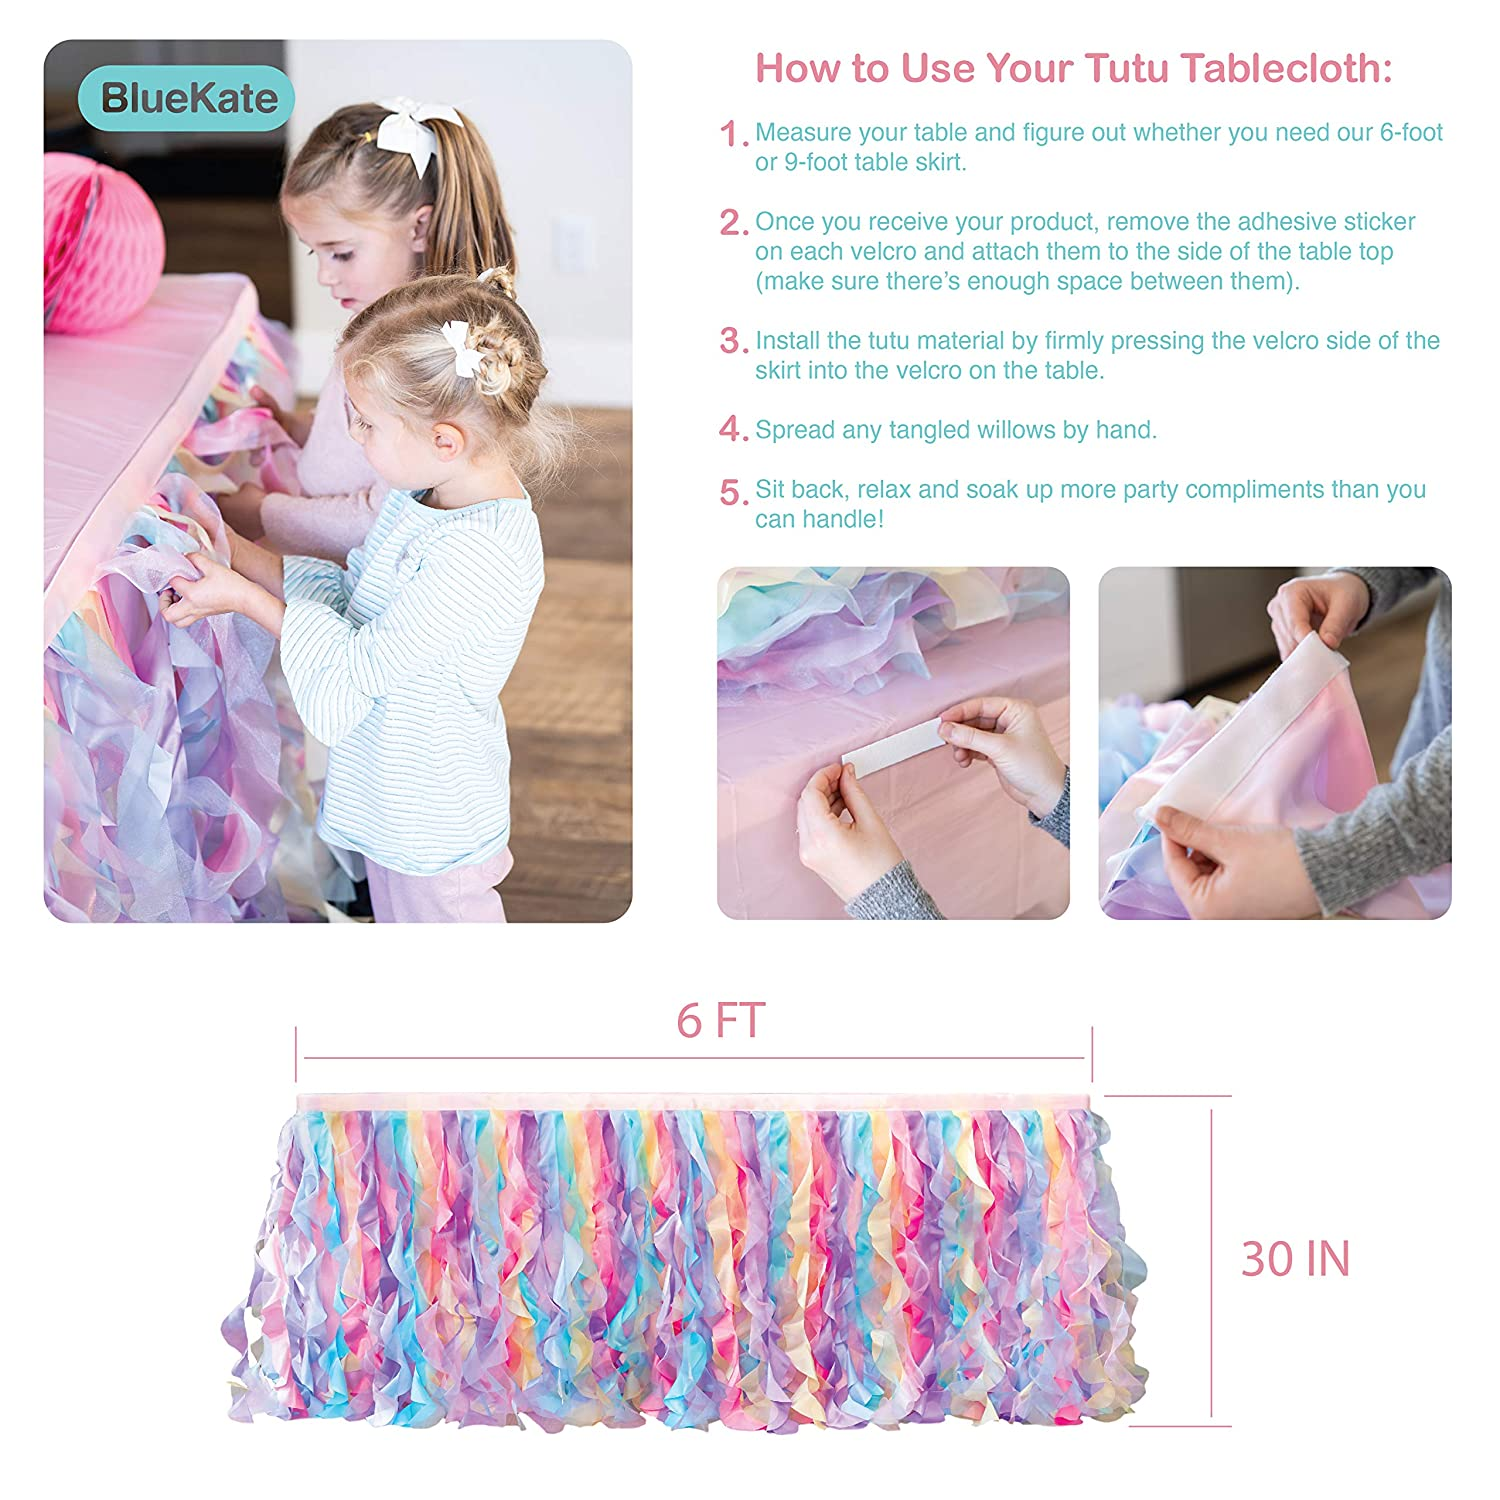 Rectangular and Round Tables 6FT Rainbow Tulle Tutu Table Skirt Double Layer Satin Willows with Glossy Organza Weddings Baby Showers Birthday Party Decorations for Unicorn and Mermaid Parties